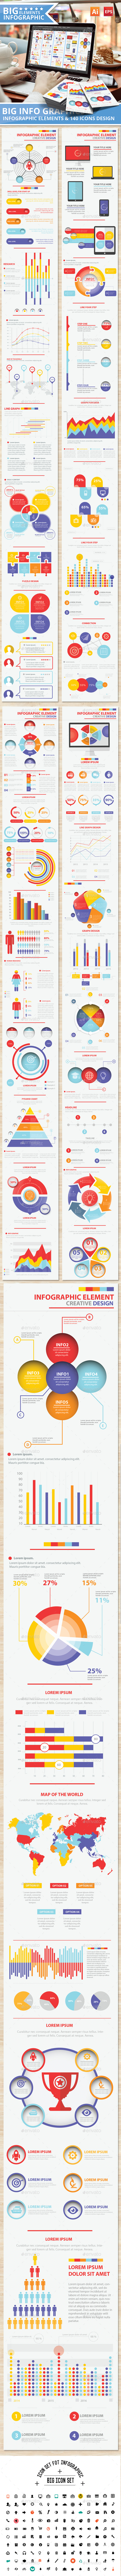 Big Infographic Elements Design - Infographics